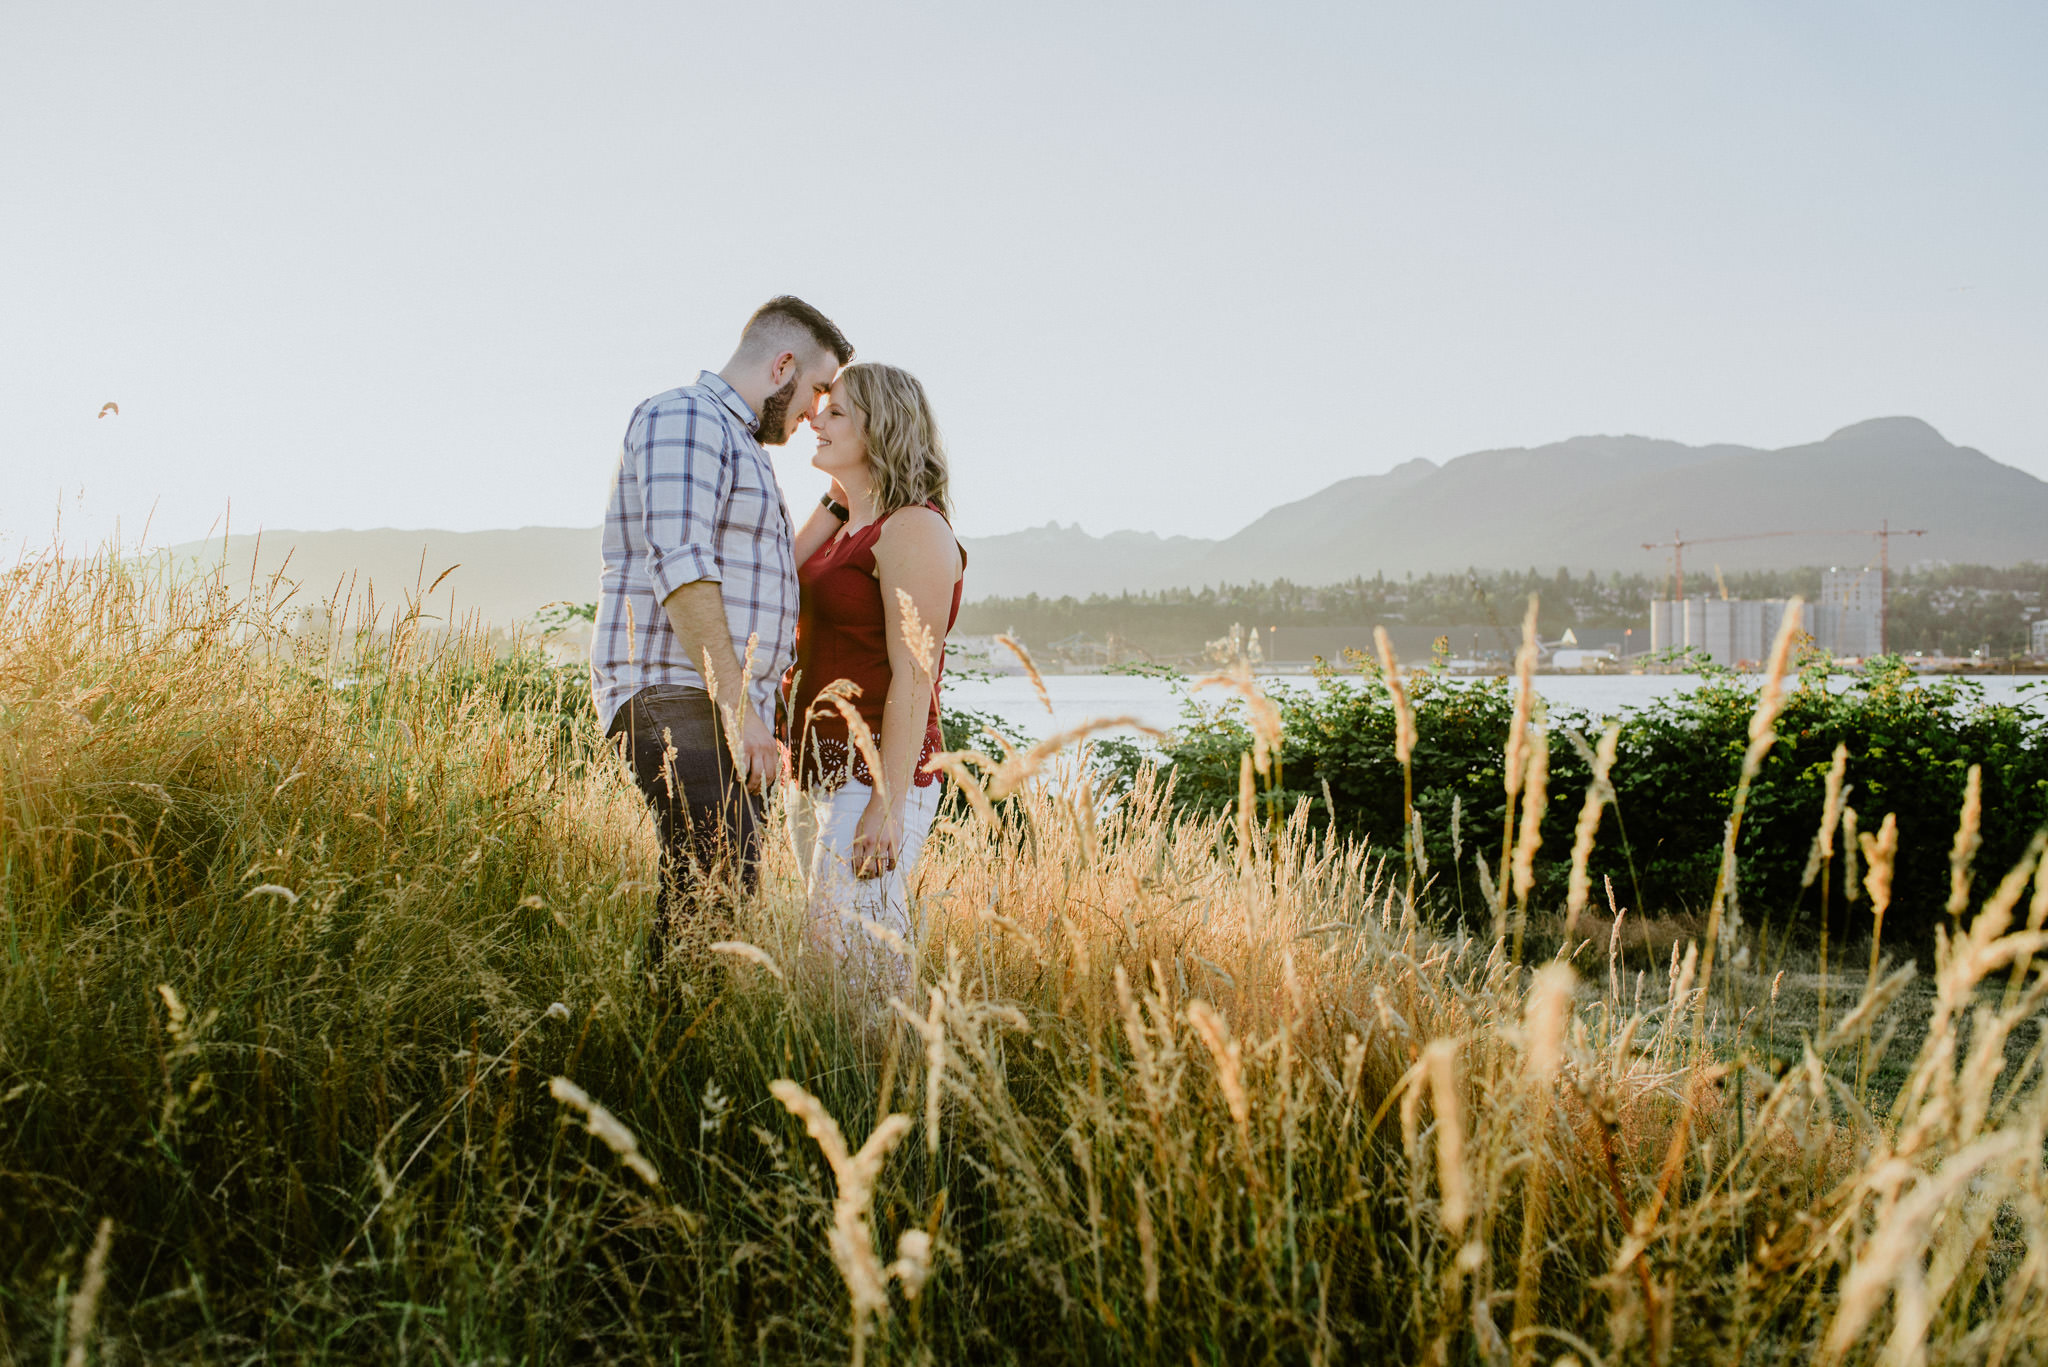 couple nuzzling in long grass at sunset New Brighton Beach engagement Vancouver